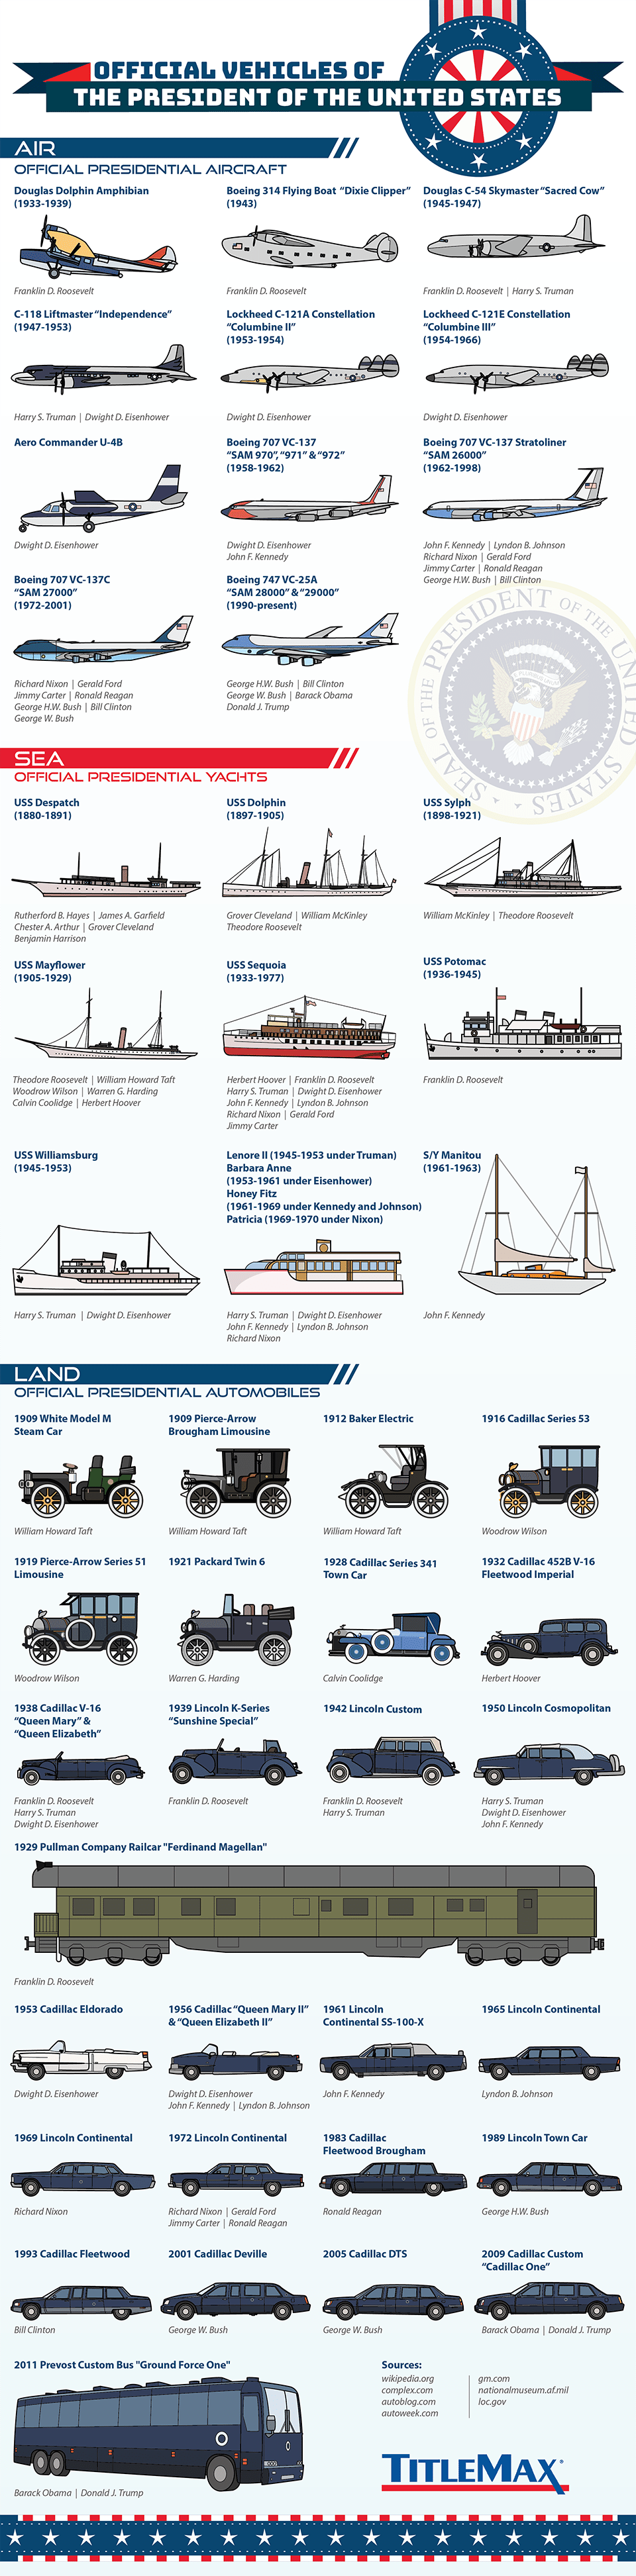 Planes, Trains & Automobiles of U.S. Presidents infographic